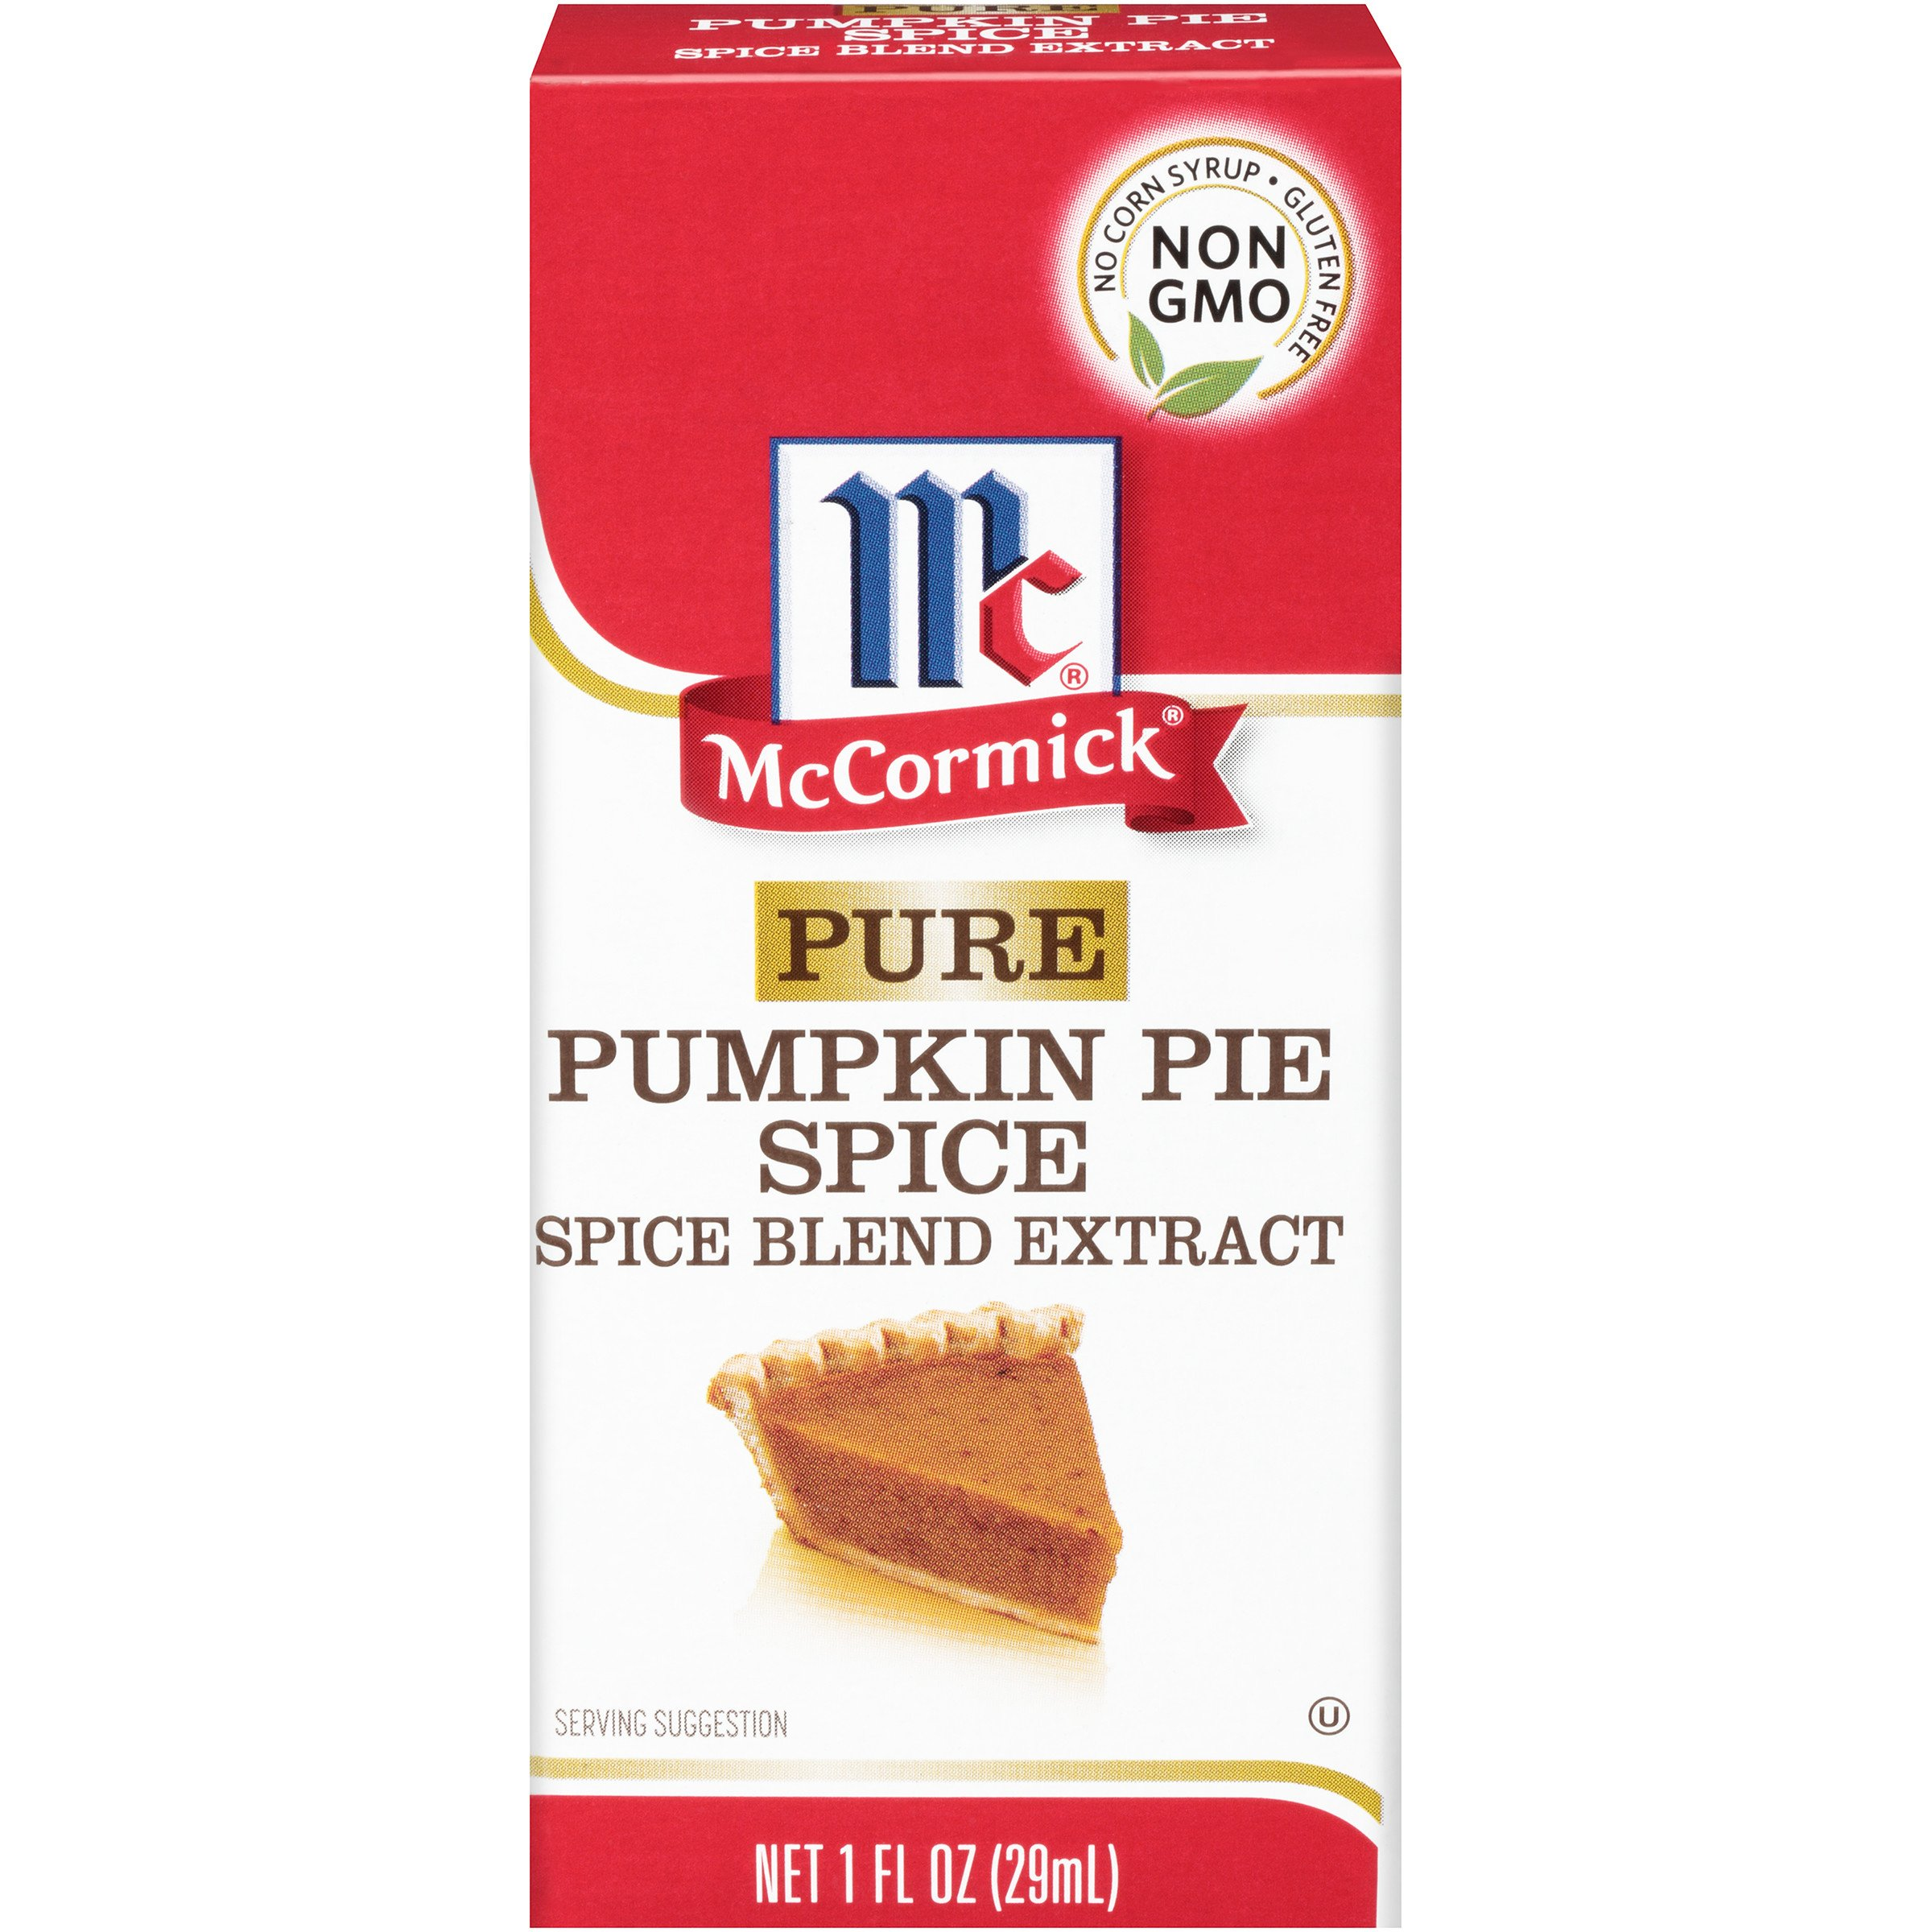 McCormick Pure PumpkinPie Spice Blend Extract, Features a Premium Blend of Cinnamon,Ginger, Nutmeg and Allspice, All the Flavors of Pumpkin Pie Spice in an Easy, No-mess Extract, Gluten Free, 1 fl oz